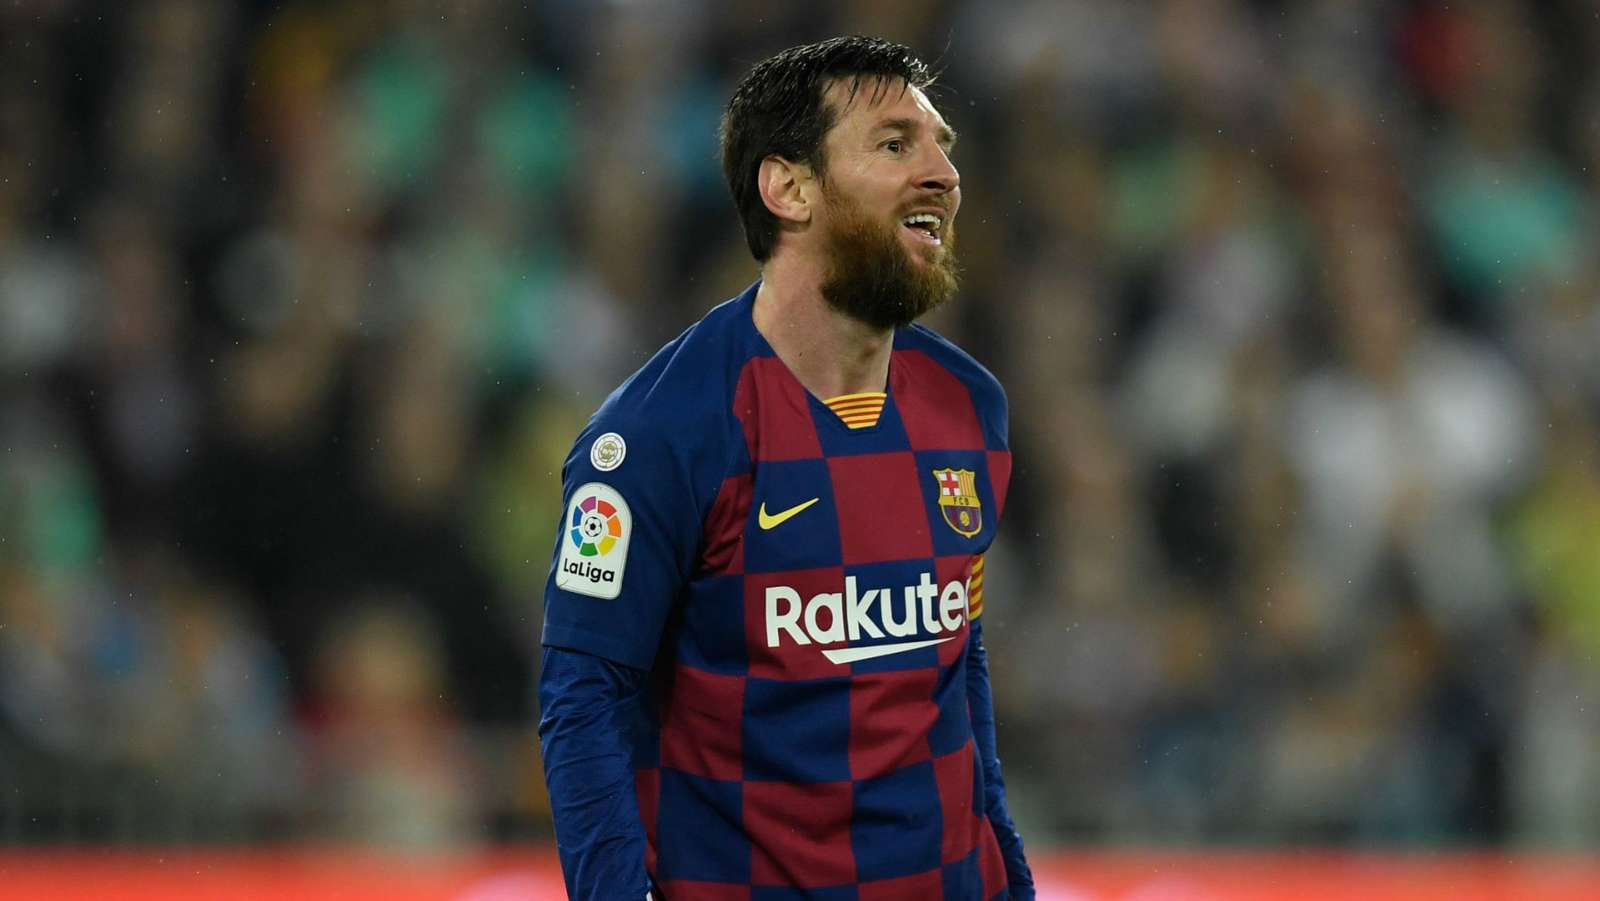 Messi miss Ronaldo? Barcelona player does not find himself